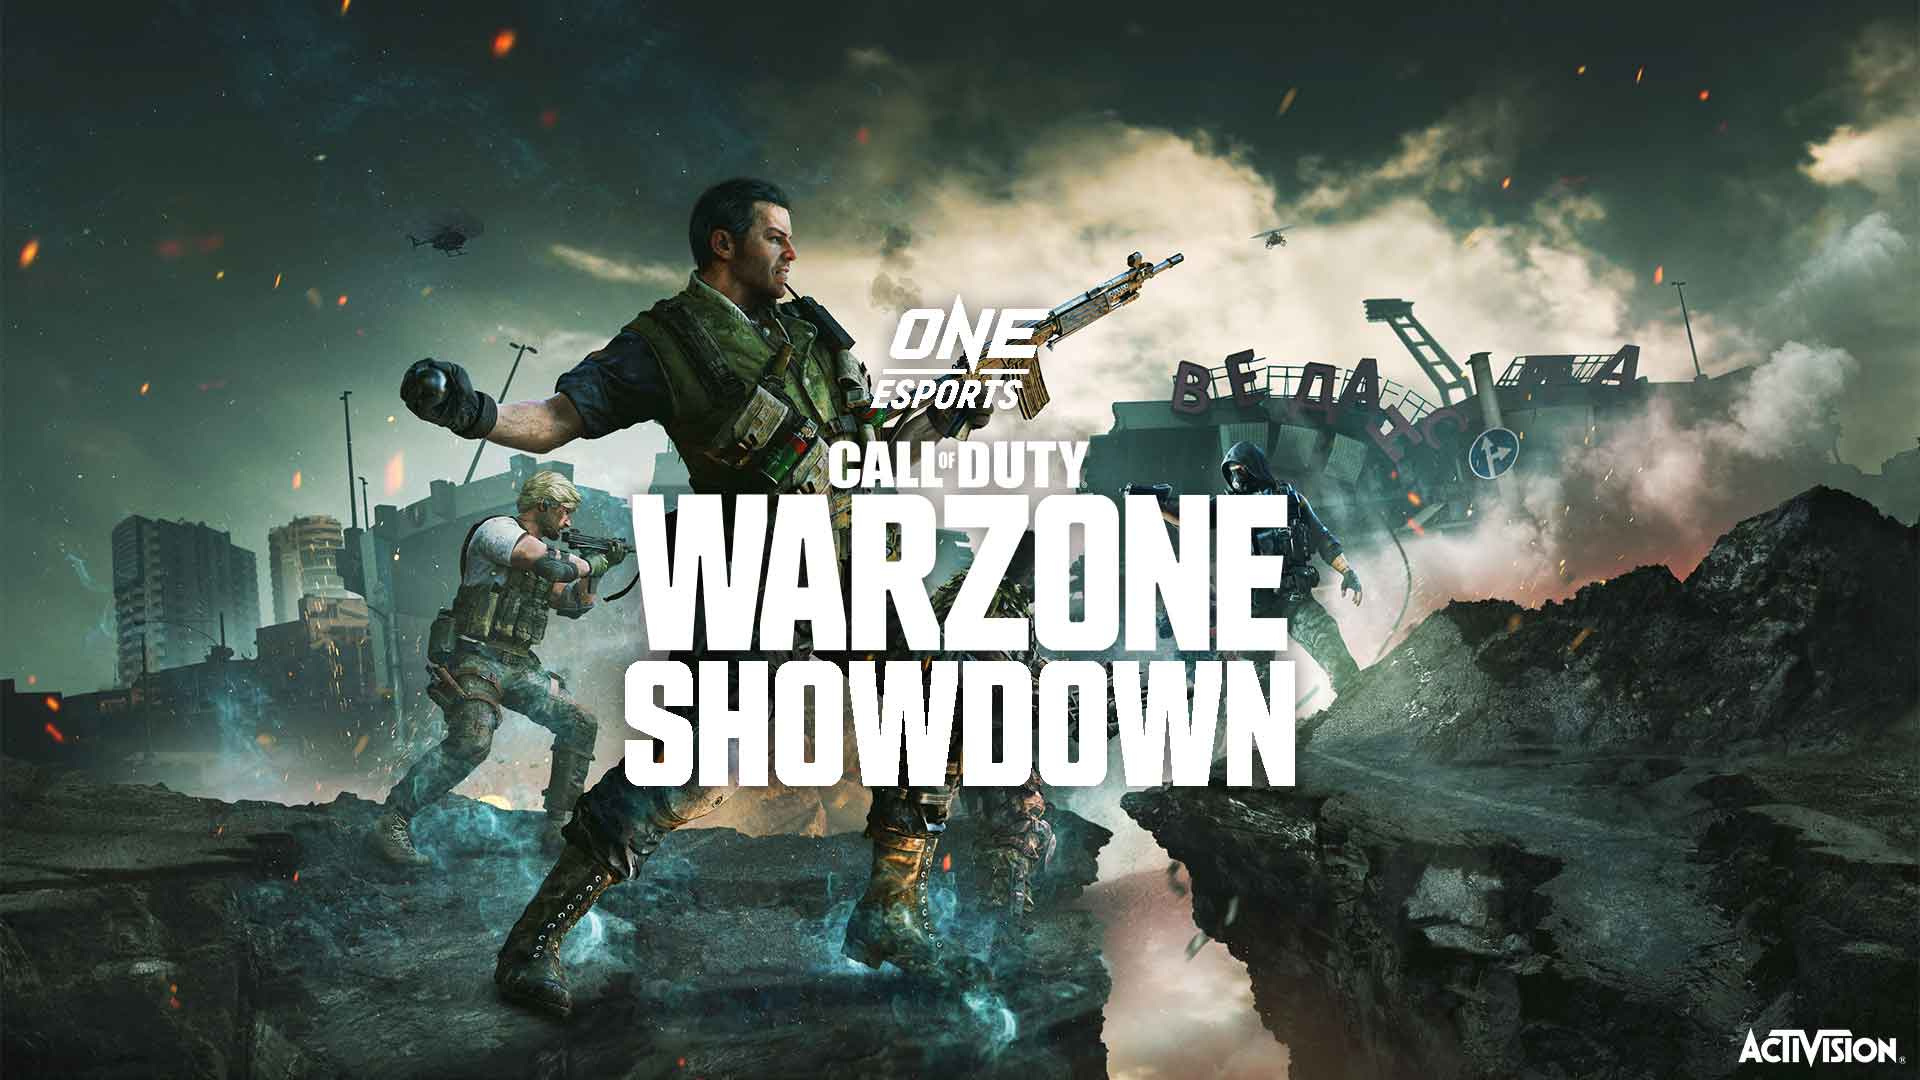 ONE Esports Warzone Showdown is set for October 10th – Philippine Esports has huge potential